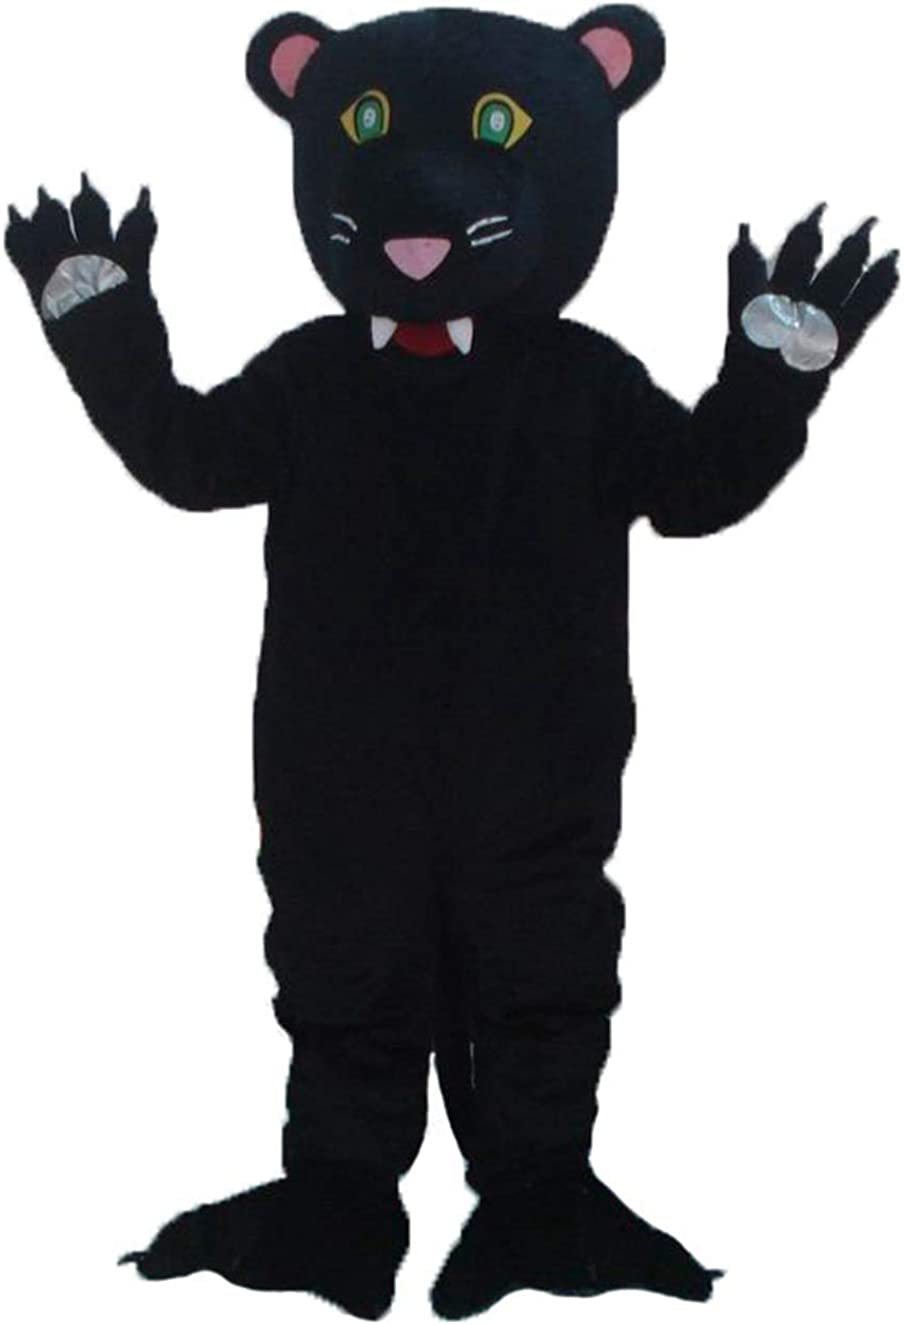 Adult Size Max 79% OFF Panther Max 45% OFF Mascot Costume for Suit Full Plush Party Blac